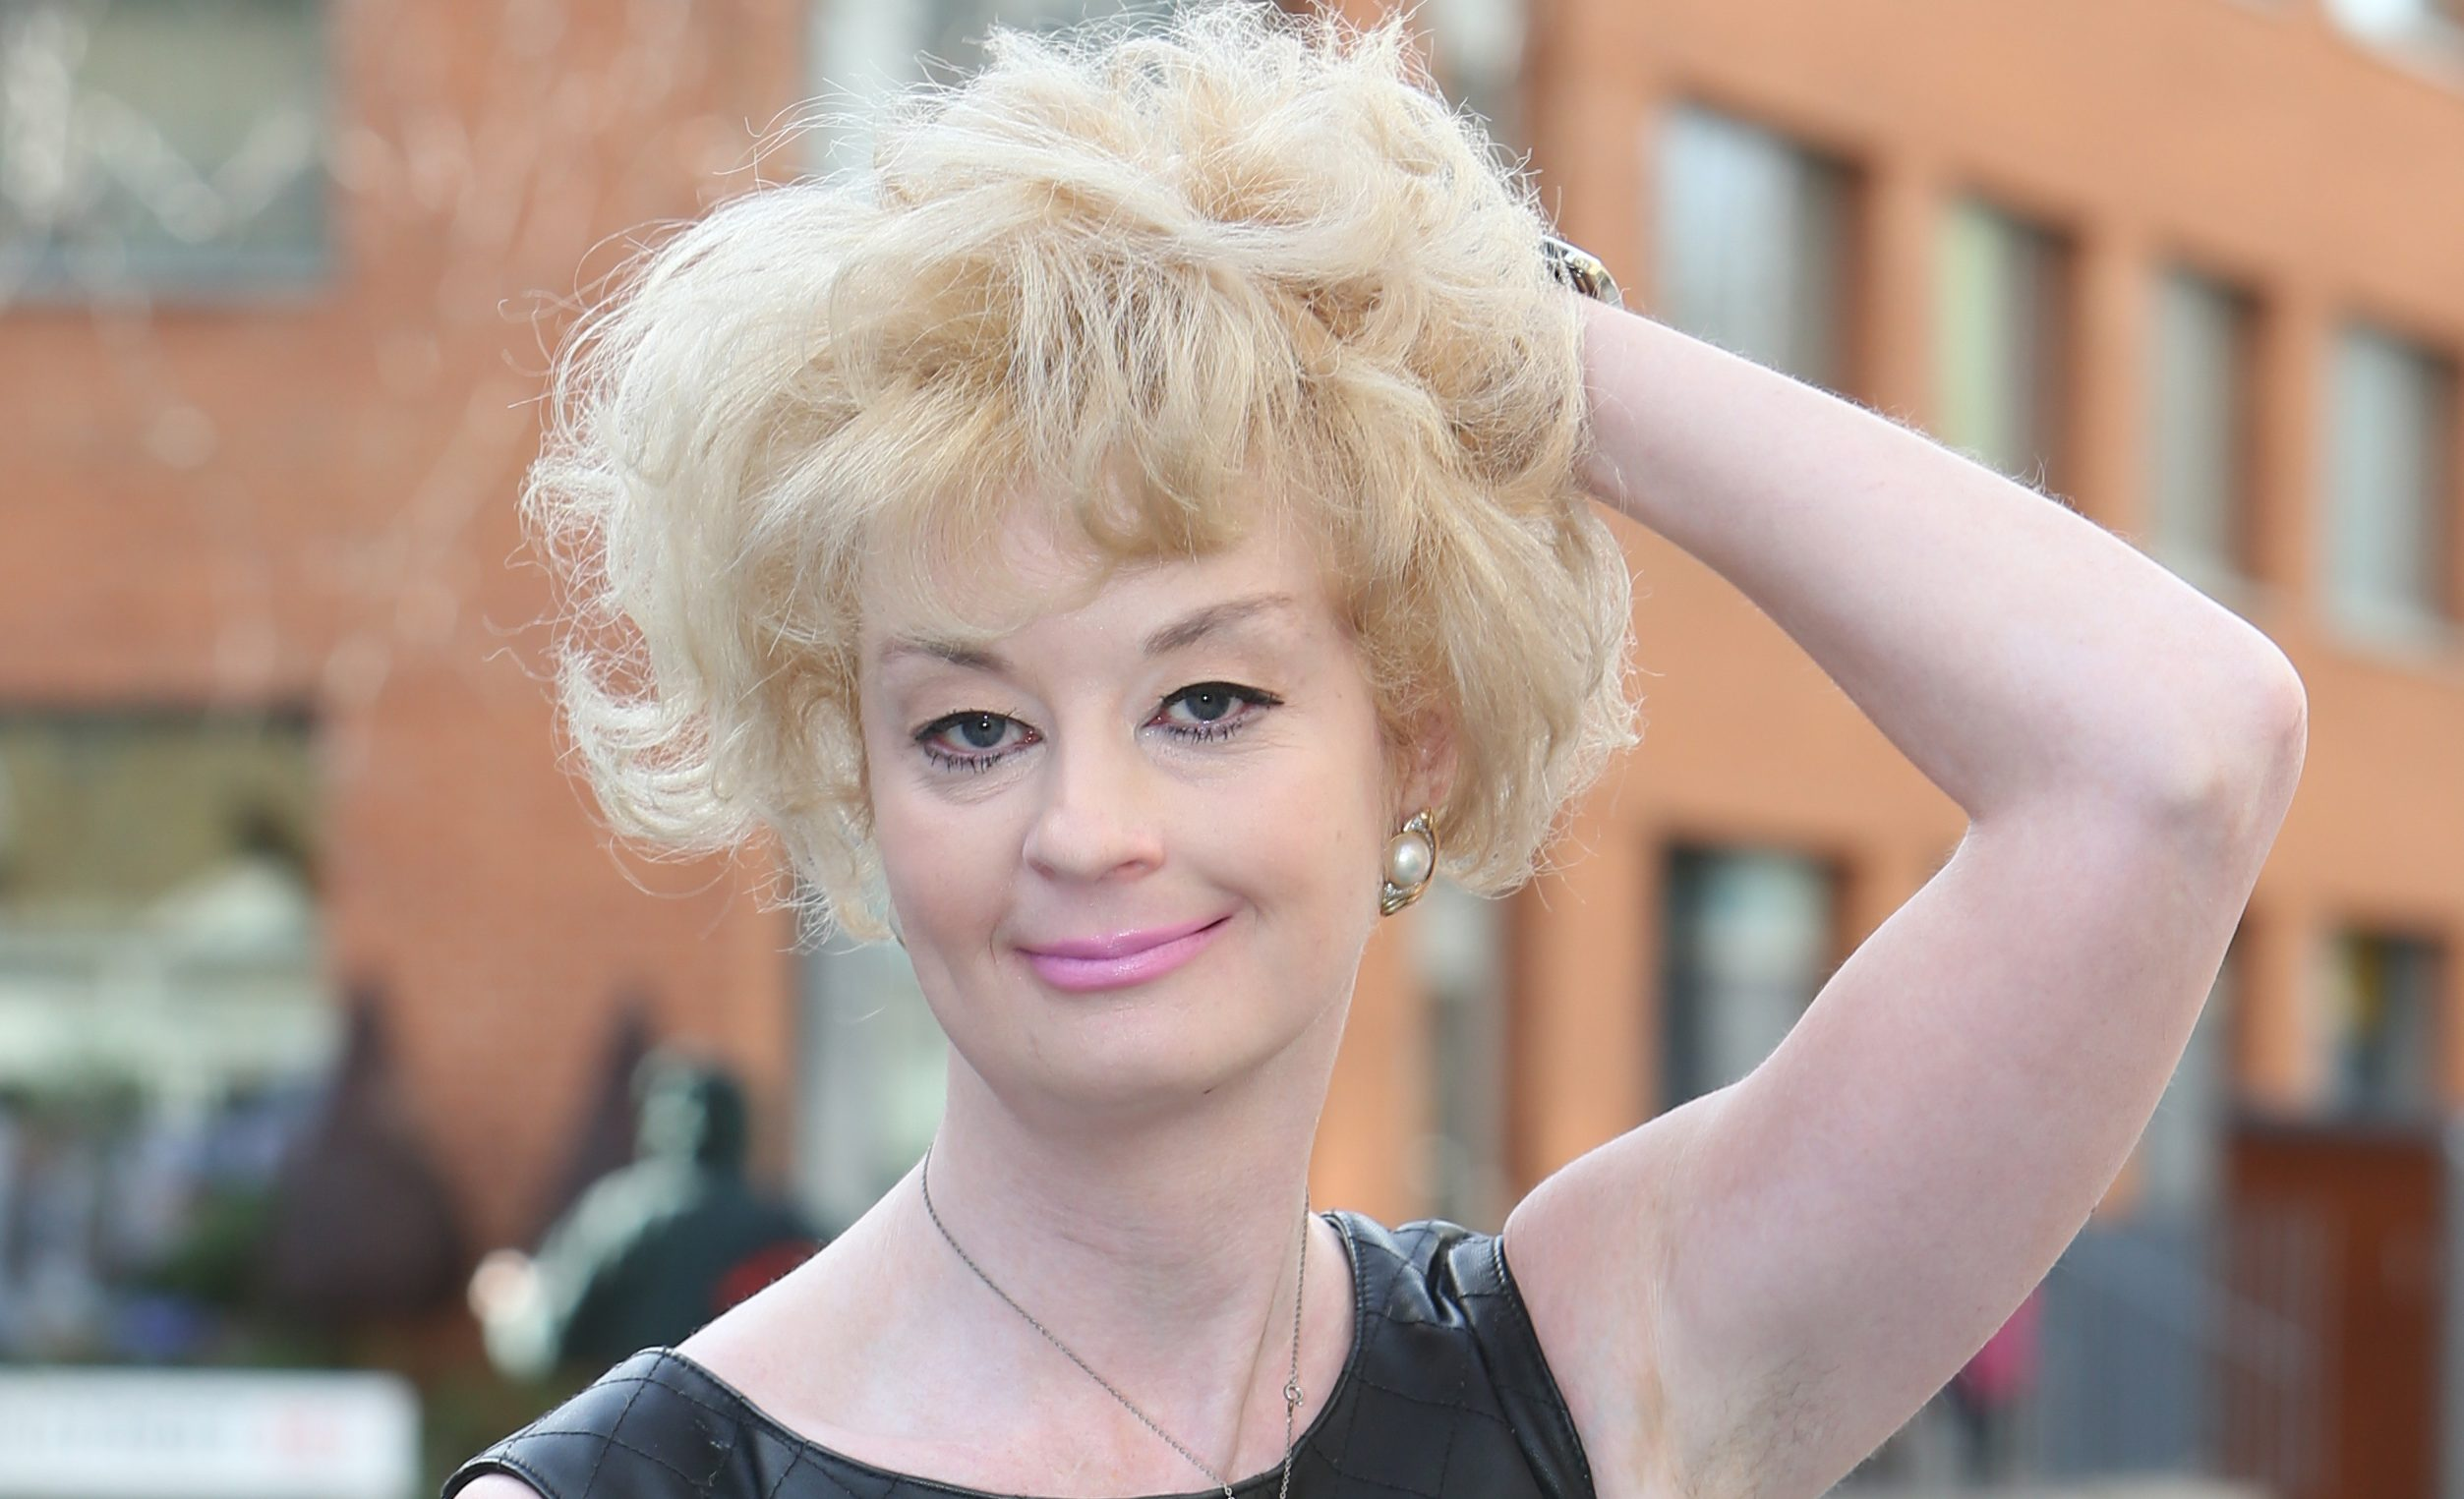 Snapchat Lauren Harries naked (55 photos), Topless, Bikini, Selfie, underwear 2006